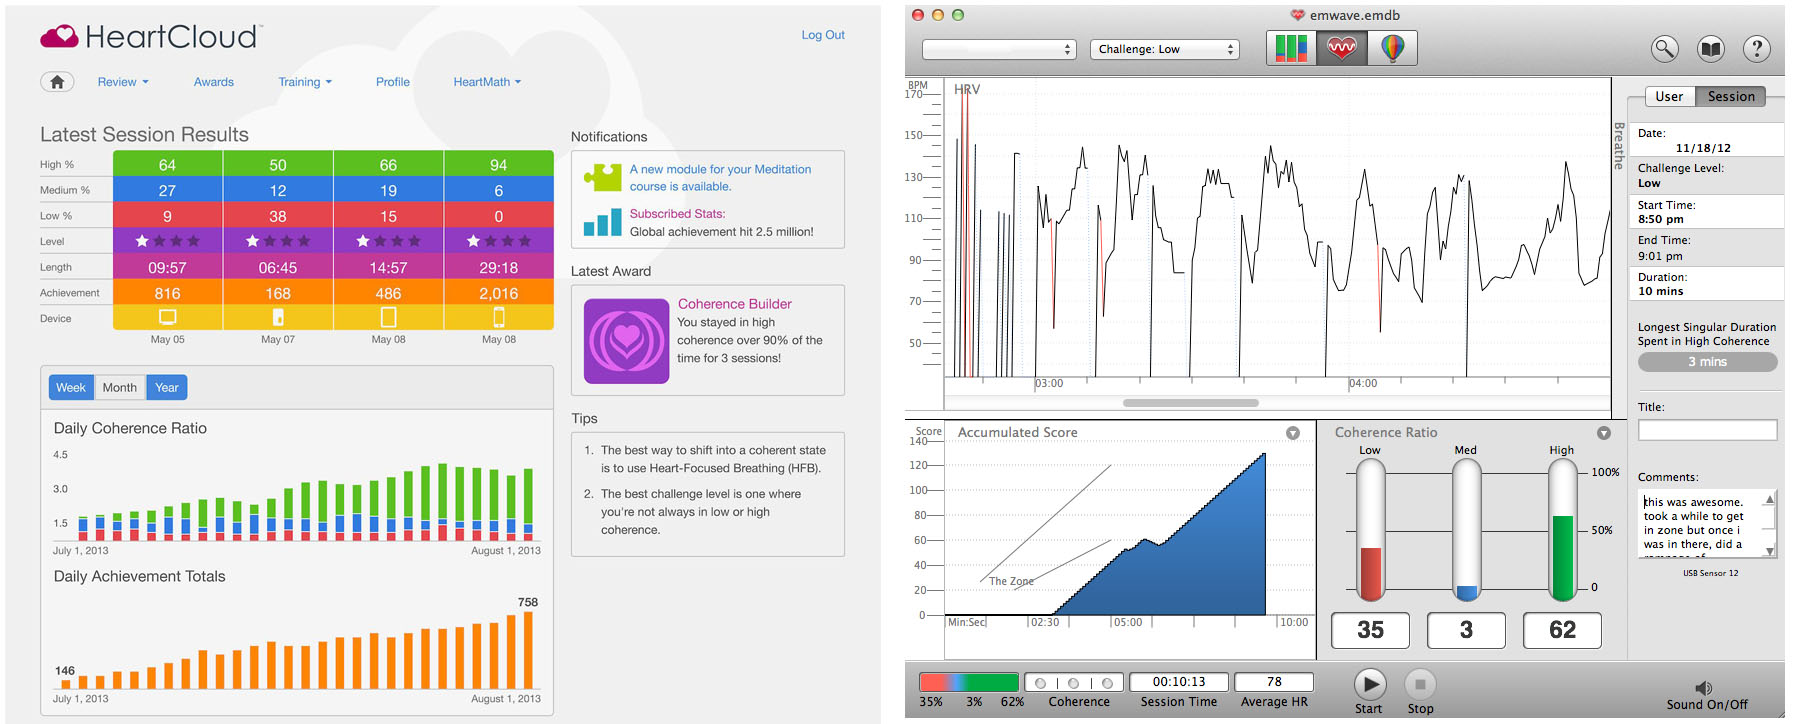 emWave Pro tracks, records and saves session data to monitor your progress. In addition you can set up an online HeartCloud account to access your progress and data, as well as integrate your own emWave device data.